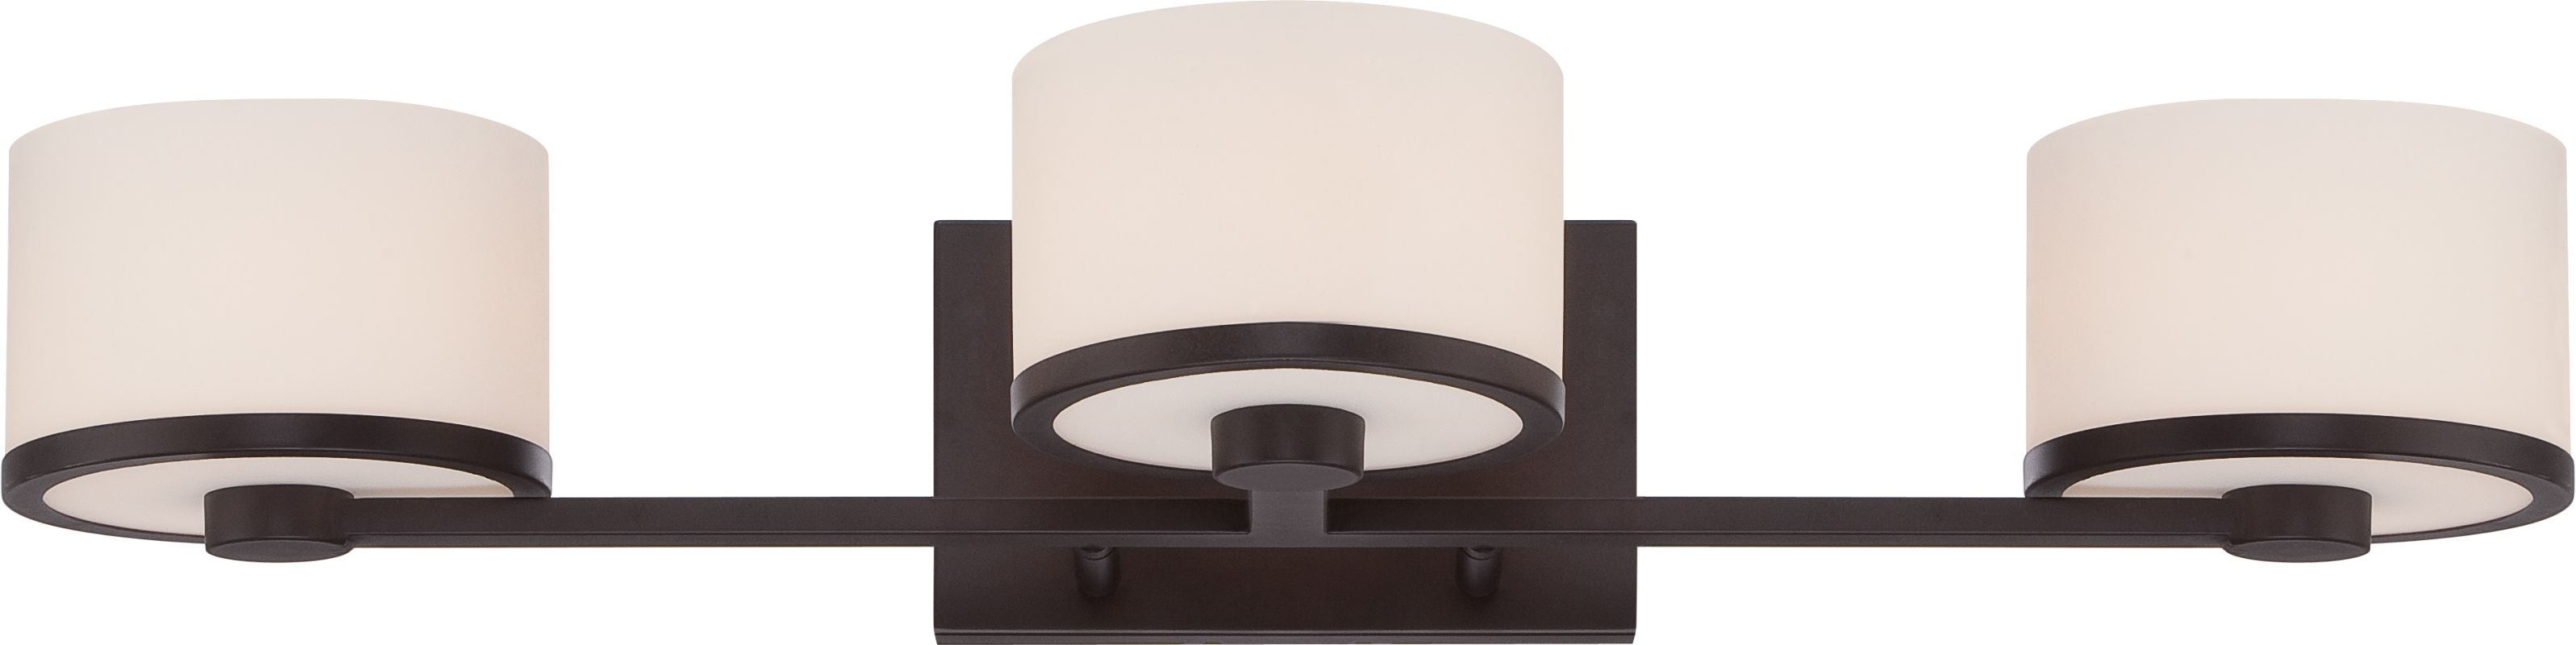 Nuvo Lighting 60/5573 Celine 3 Light Bathroom Vanity Light Venetian Sale $149.99 ITEM: bci2590799 ID#:60/5573 UPC: 45923655739 :